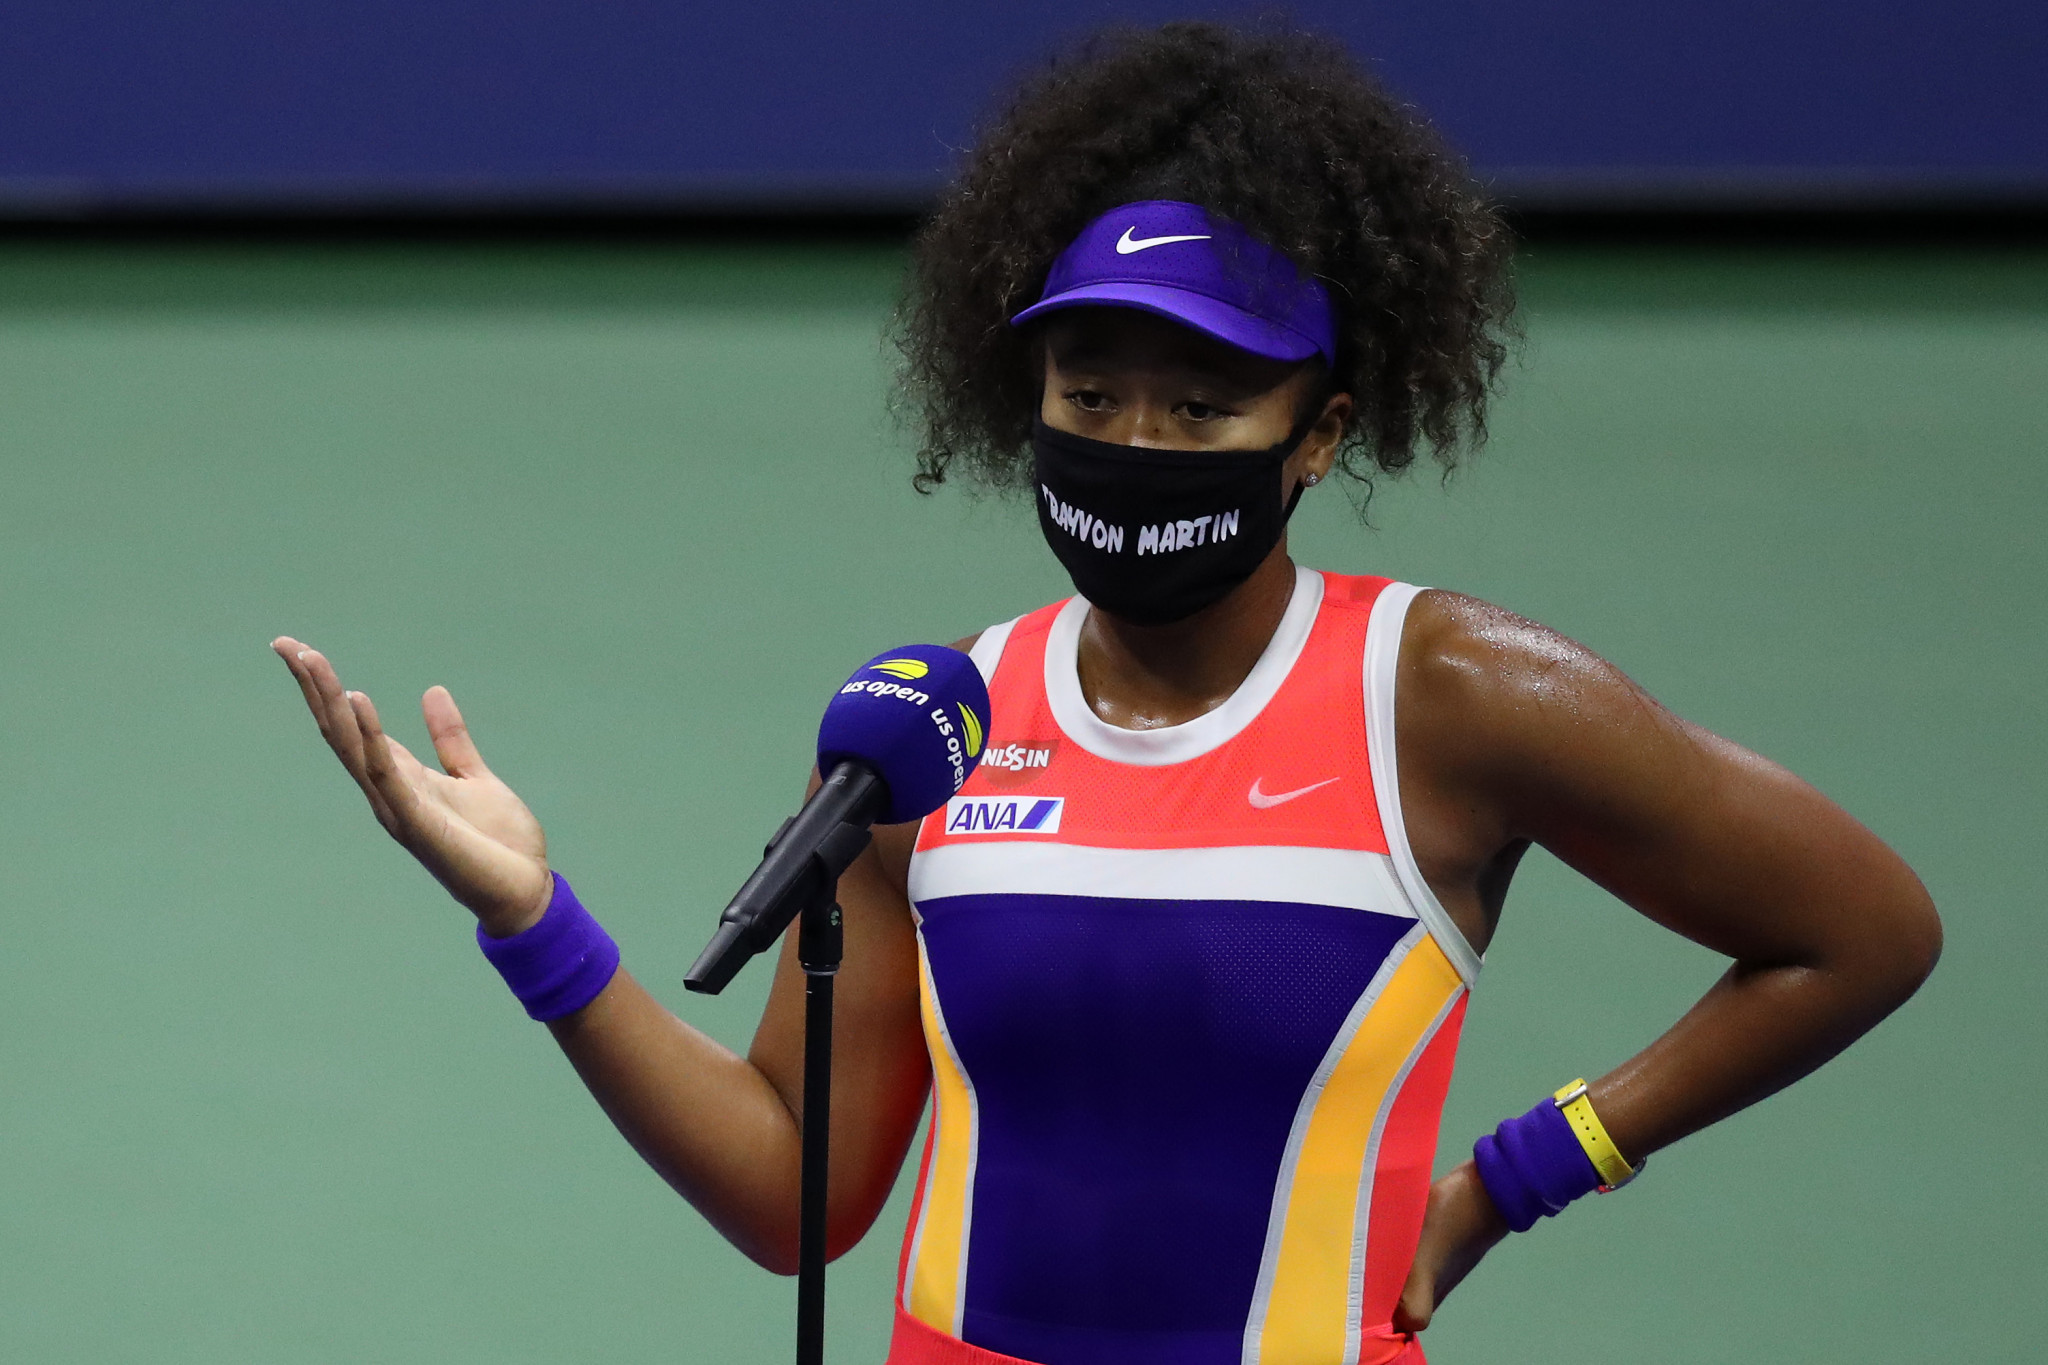 Naomi Osaka won the US Open in September and wore masks showing the names of police brutality victims during the tournament ©Getty Images